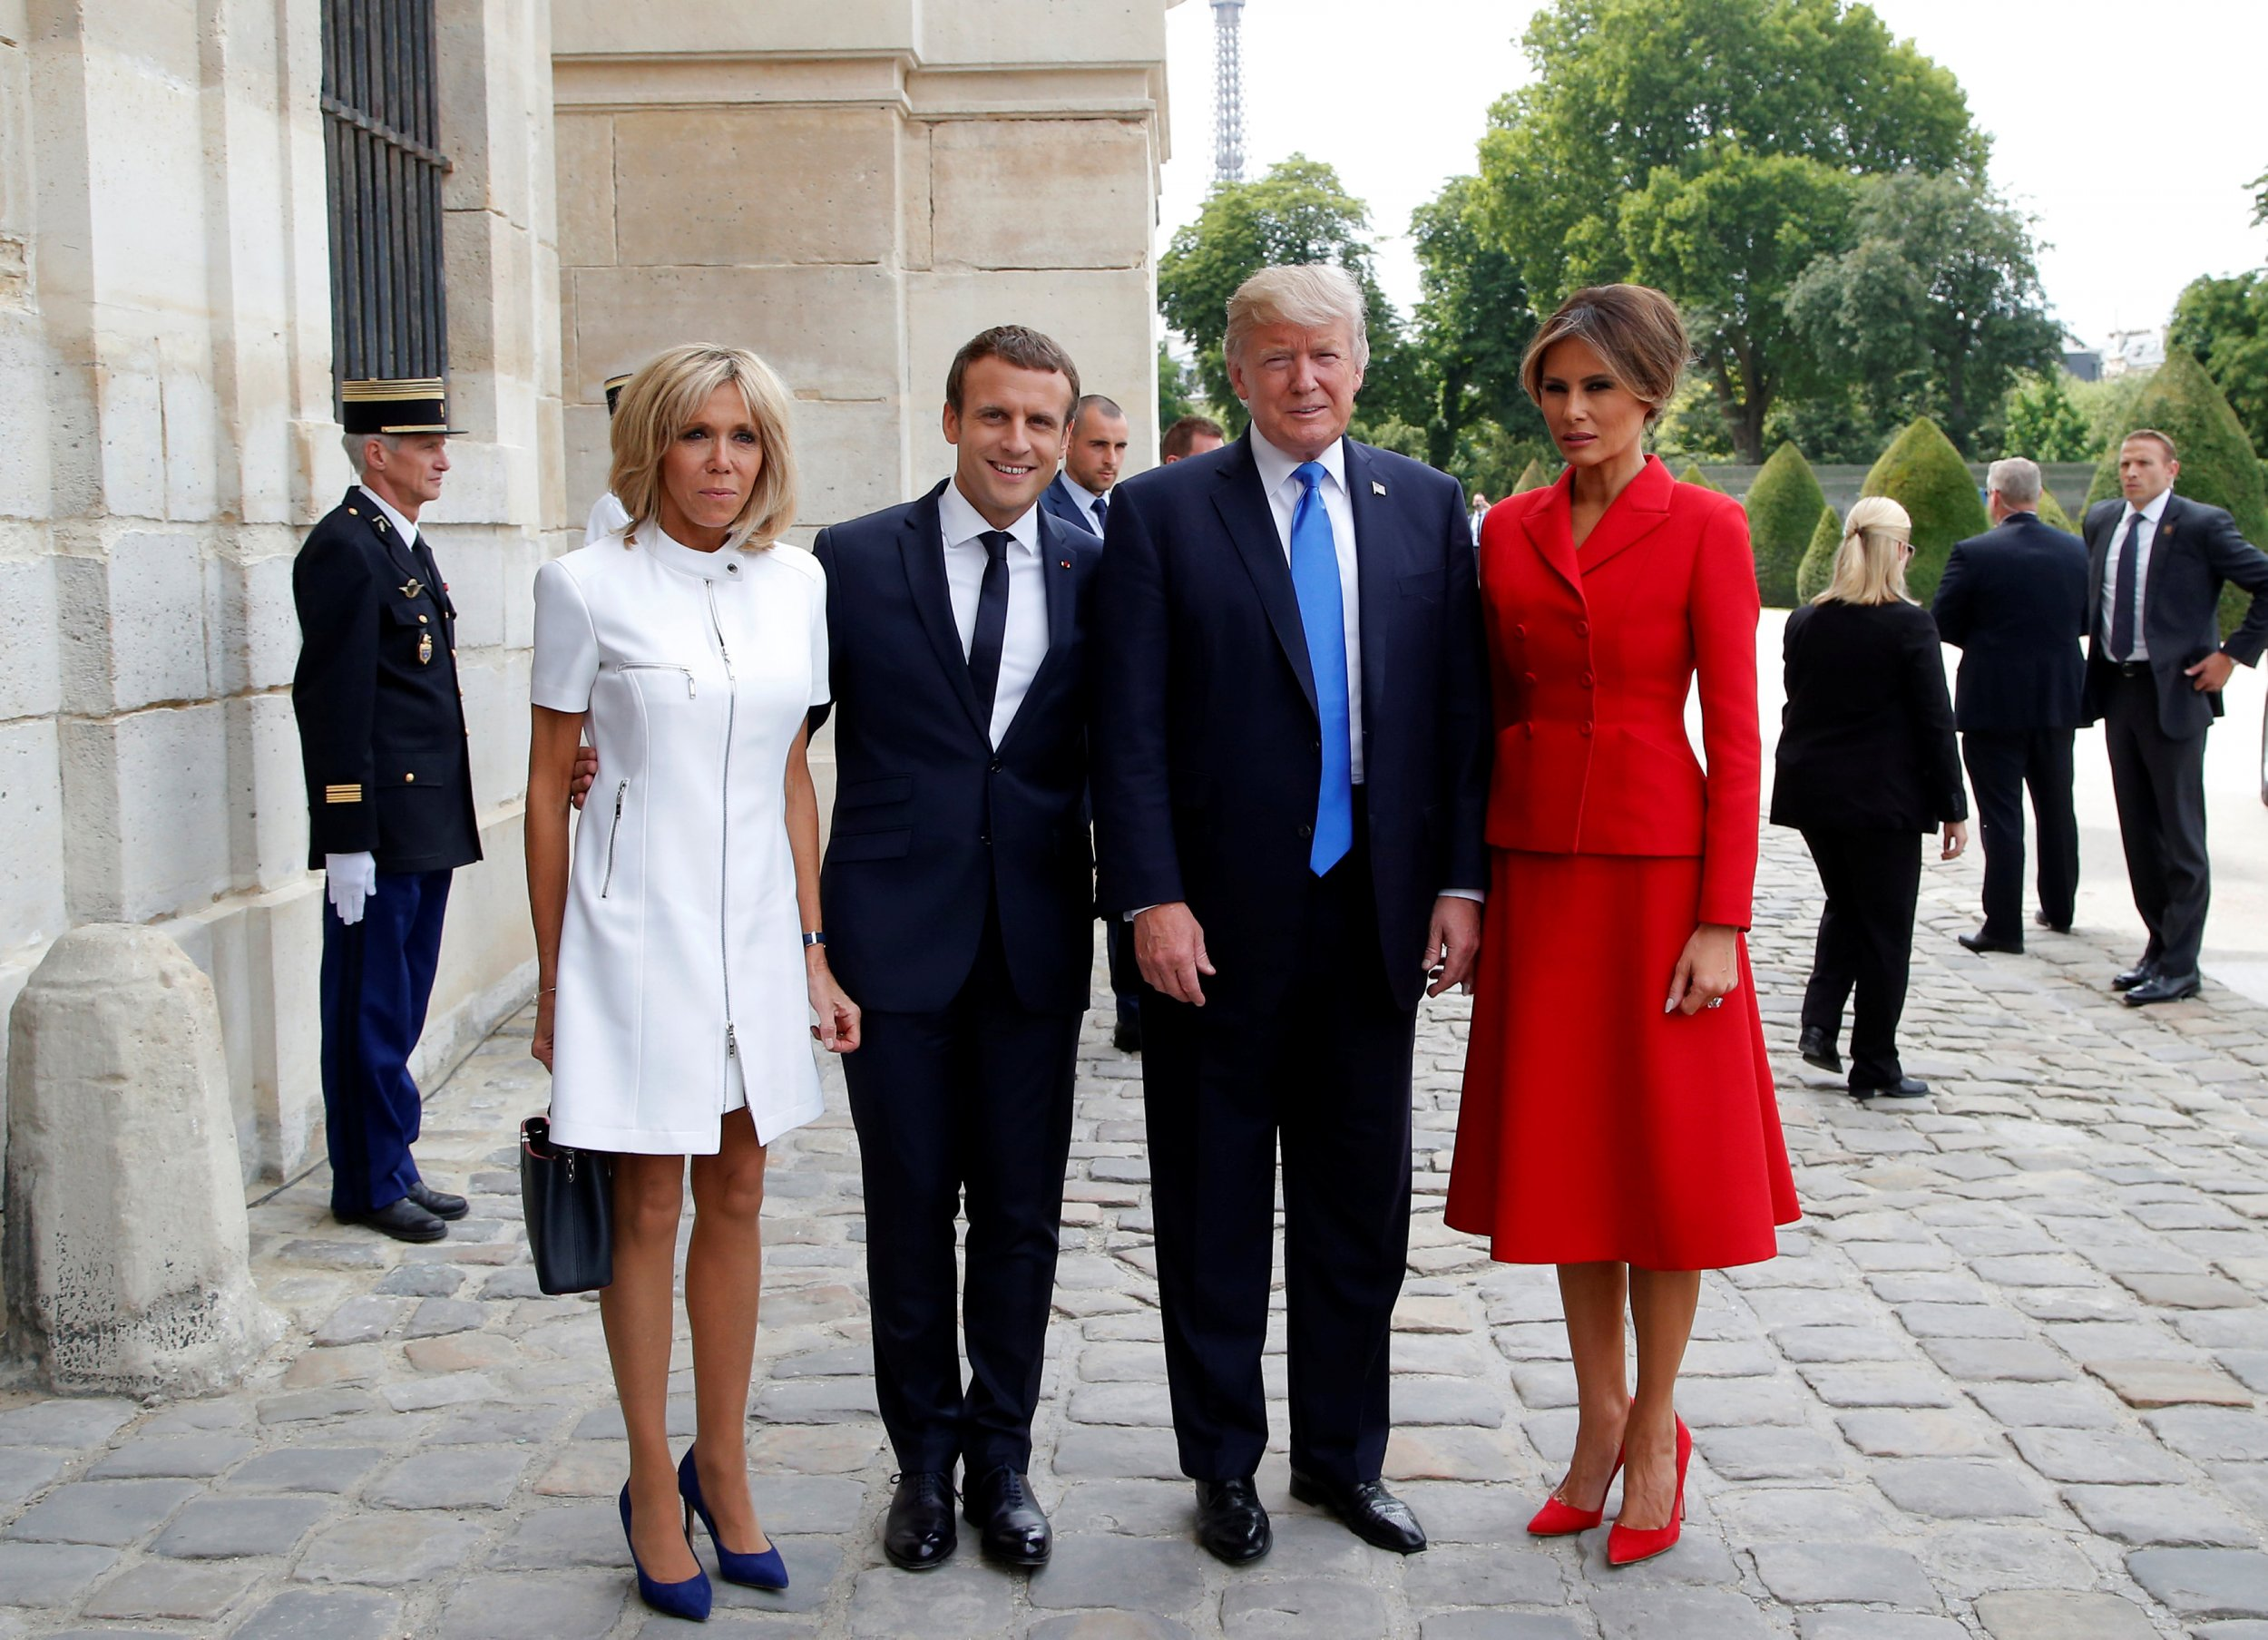 Who Is Brigitte Macron France S First Lady And President Have Reverse Age Gap Of Donald Melania Trump